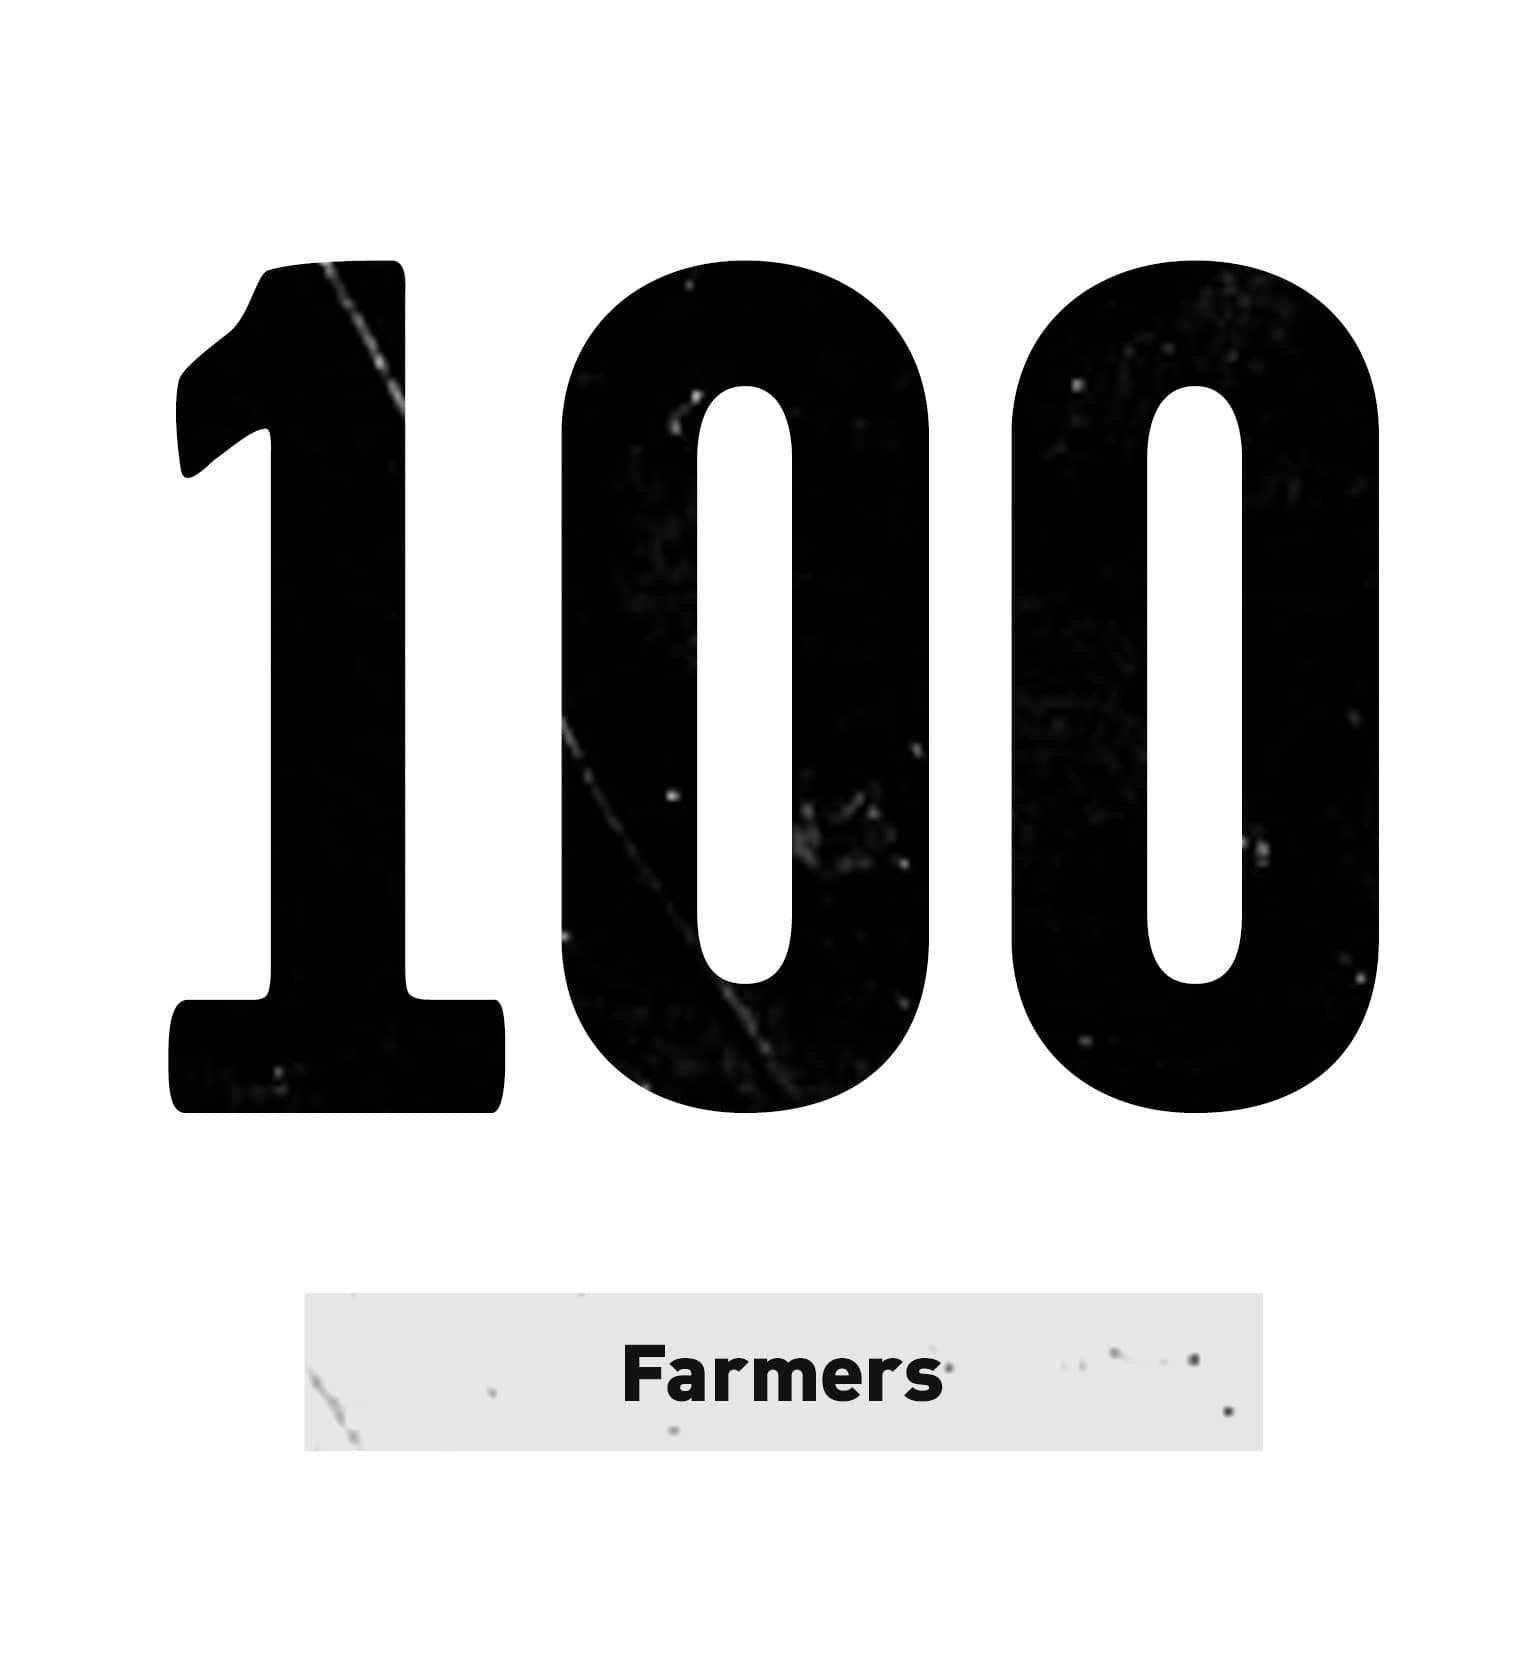 100 Farmers enrolled in farmer business school